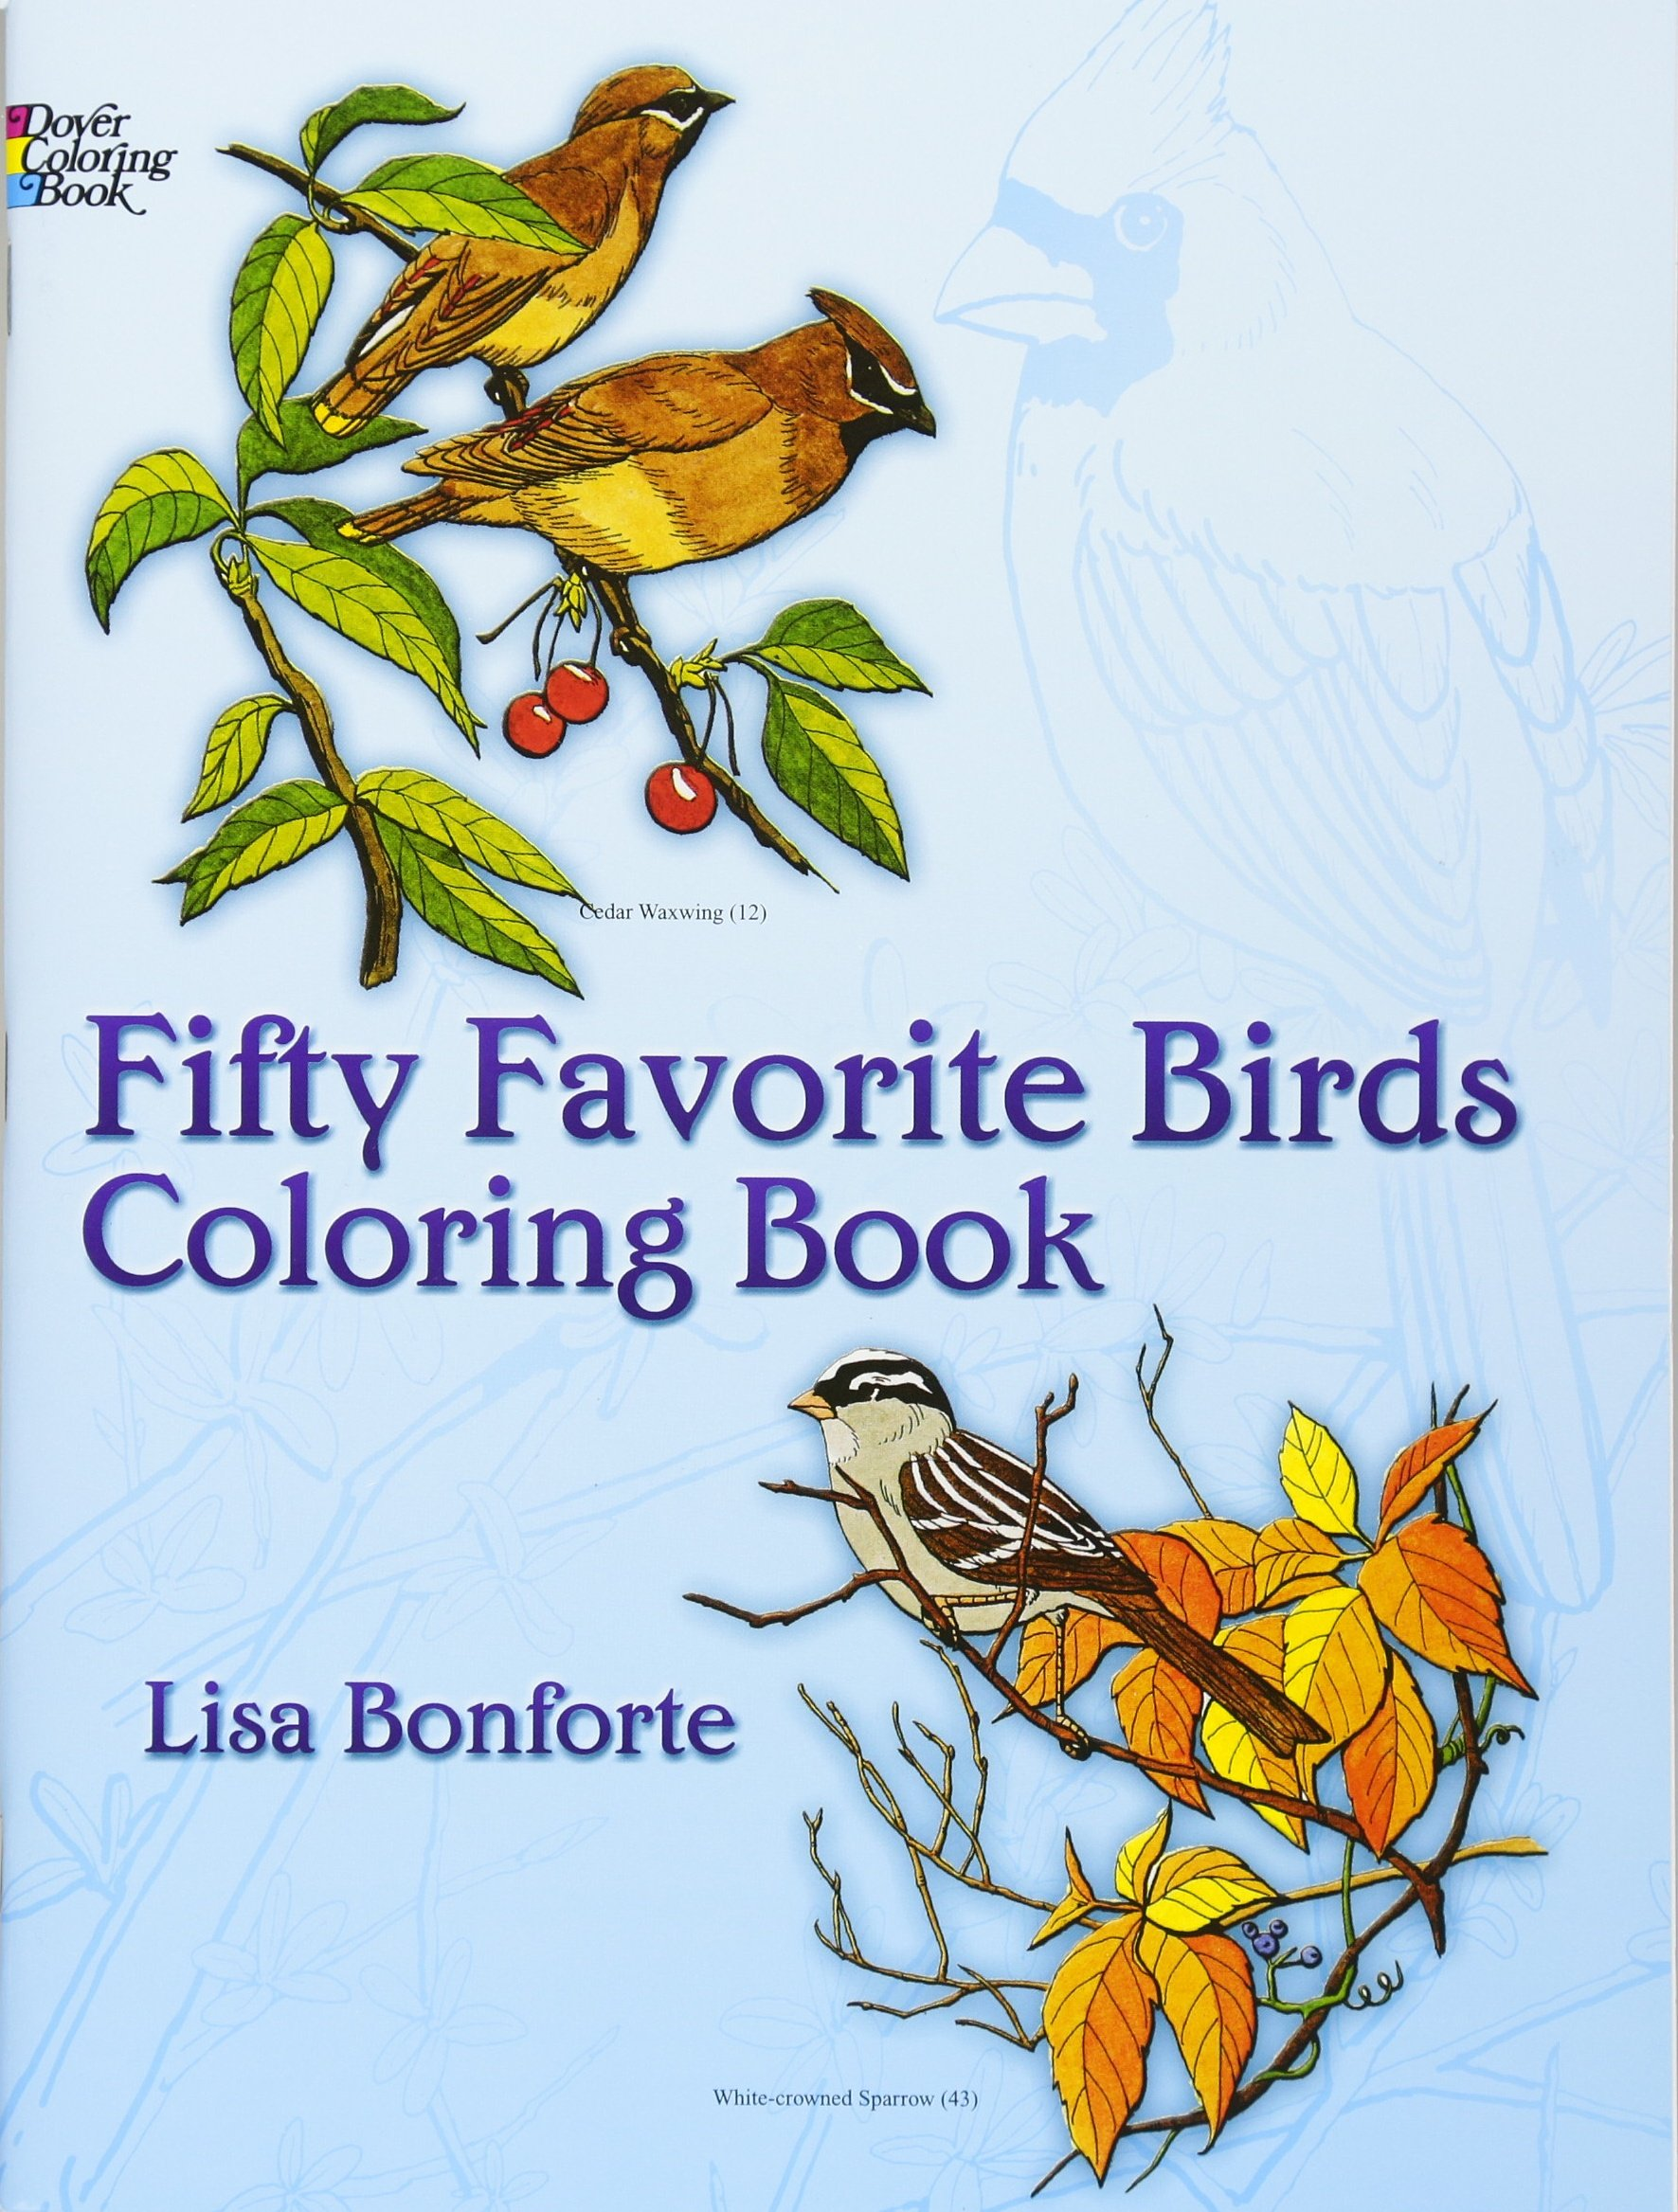 Fifty Favorite Birds Coloring Nature product image